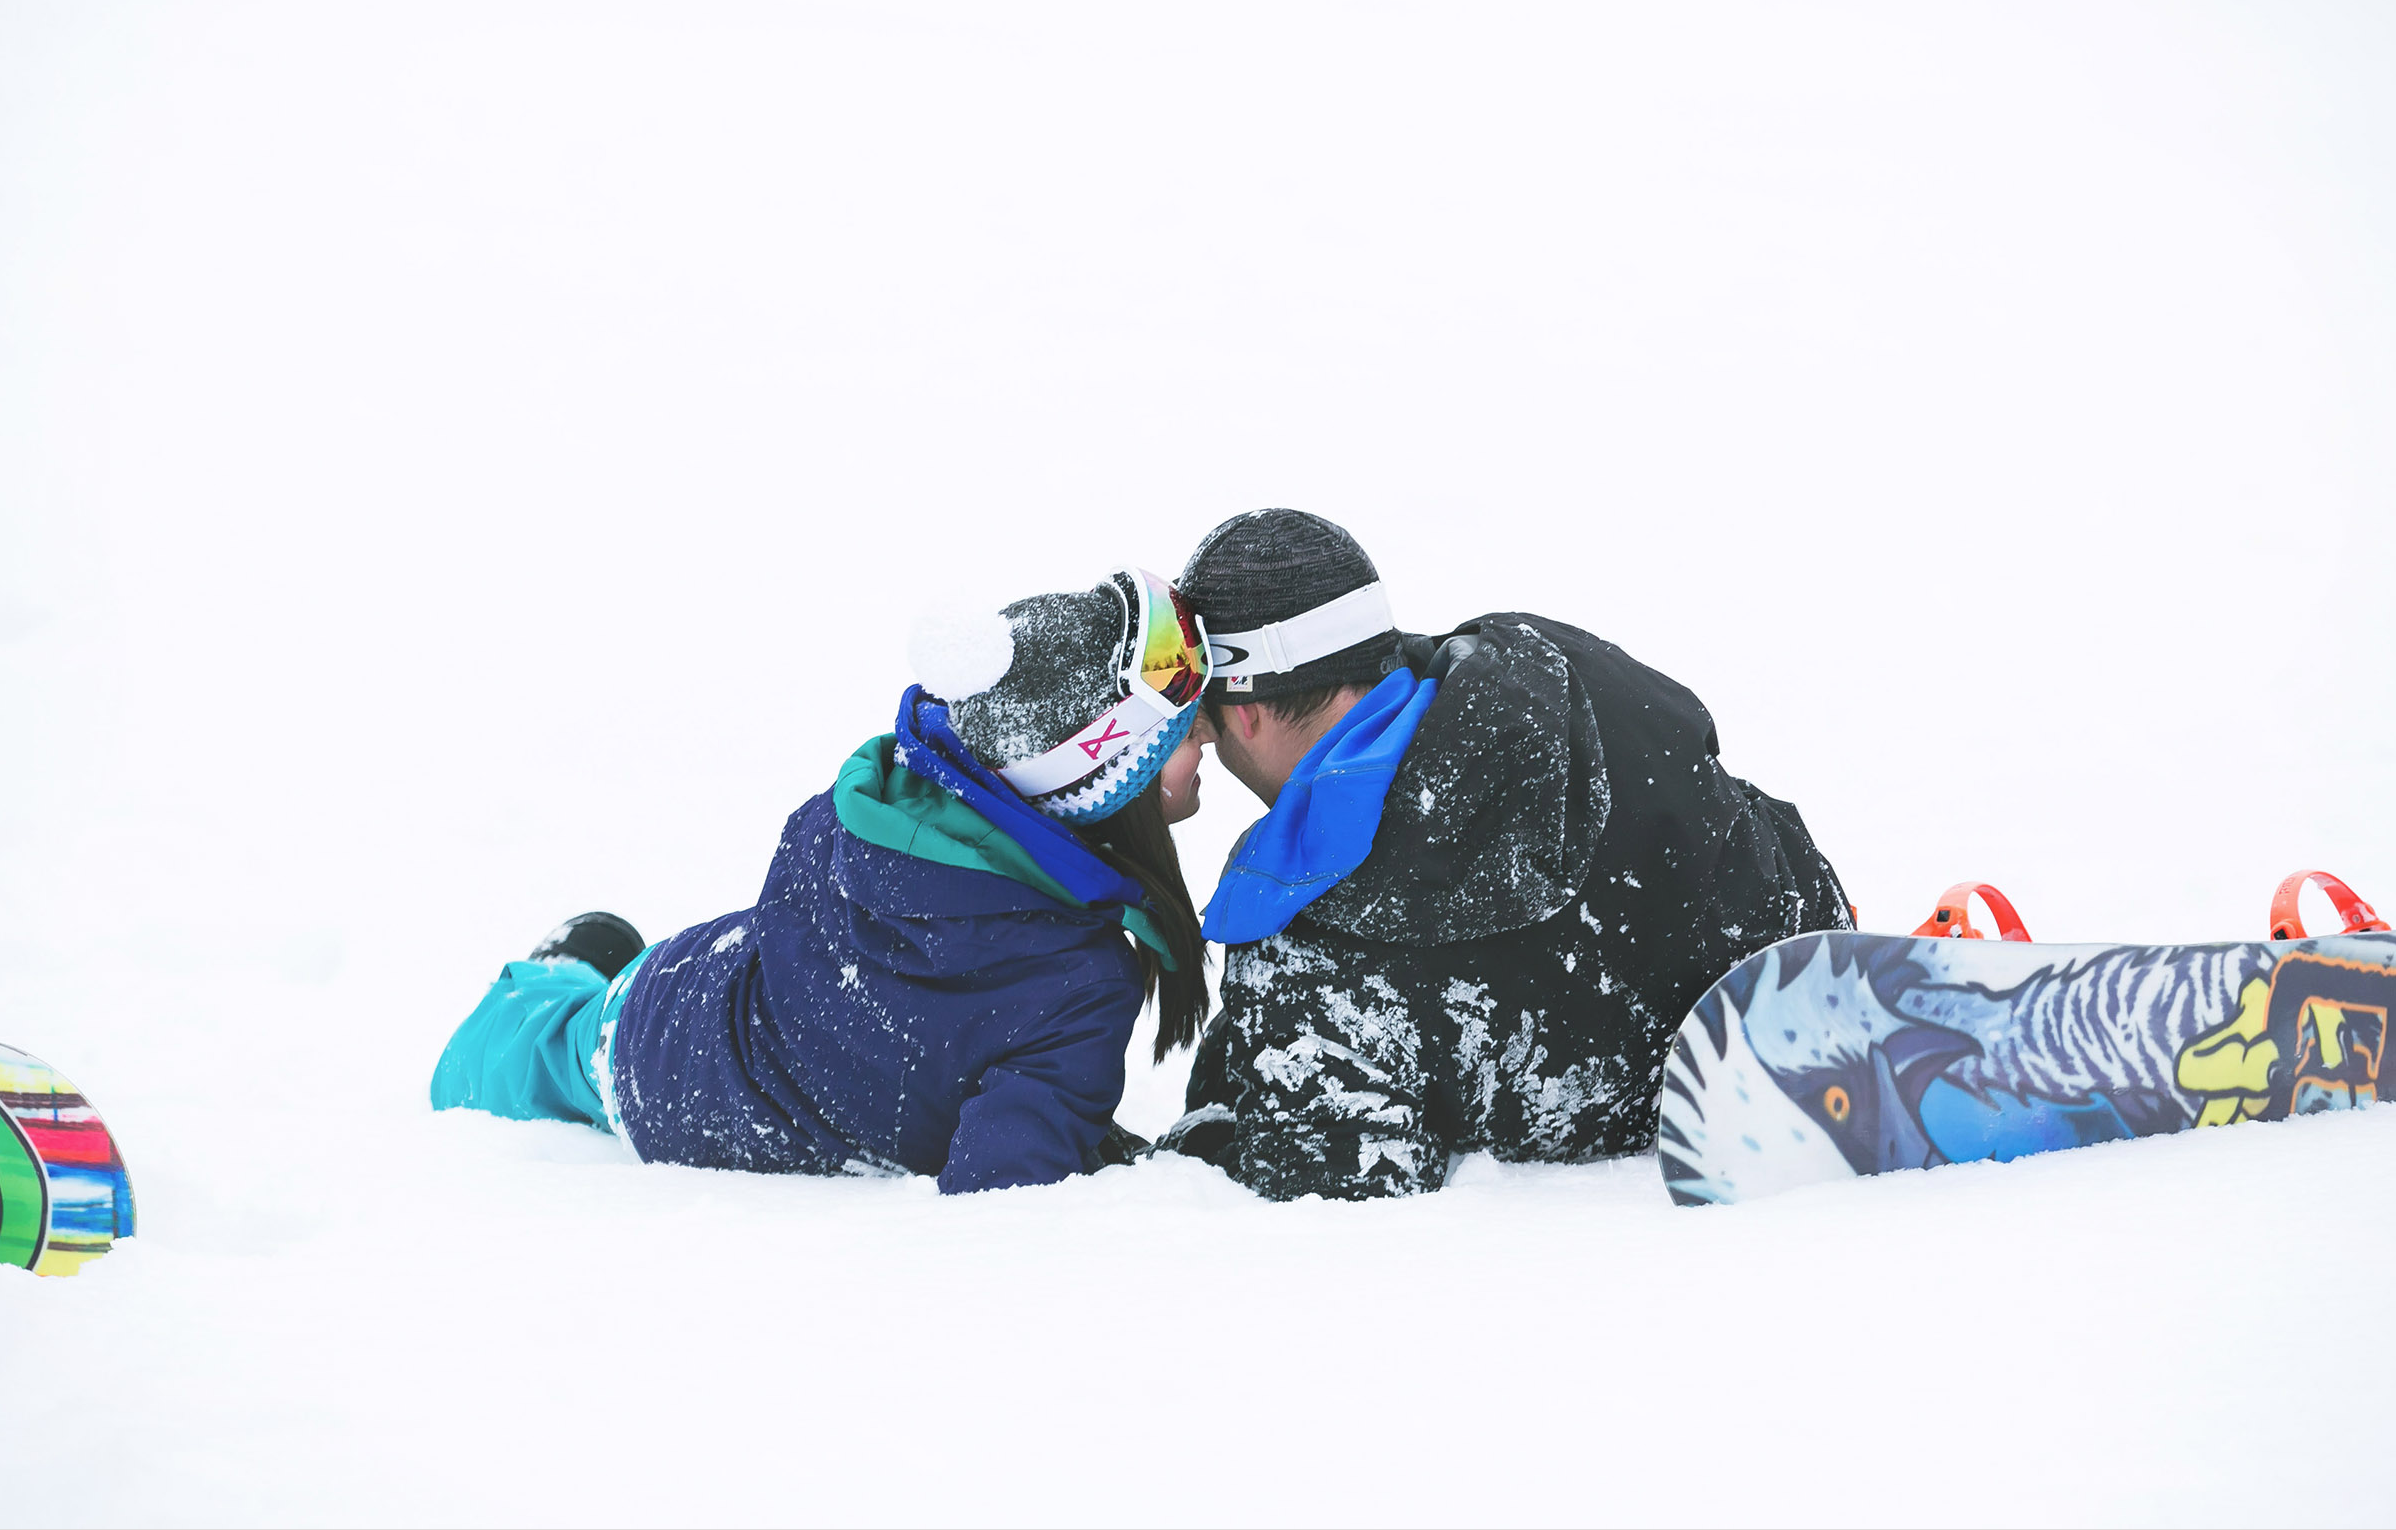 Engagement-Photos-Hamilton-Niagara-Toronto-Burlington-Oakville-Photographer-Engaged-Ring-Photography-Snowboarding-Winter-Moments-by-Lauren-Image-19.png